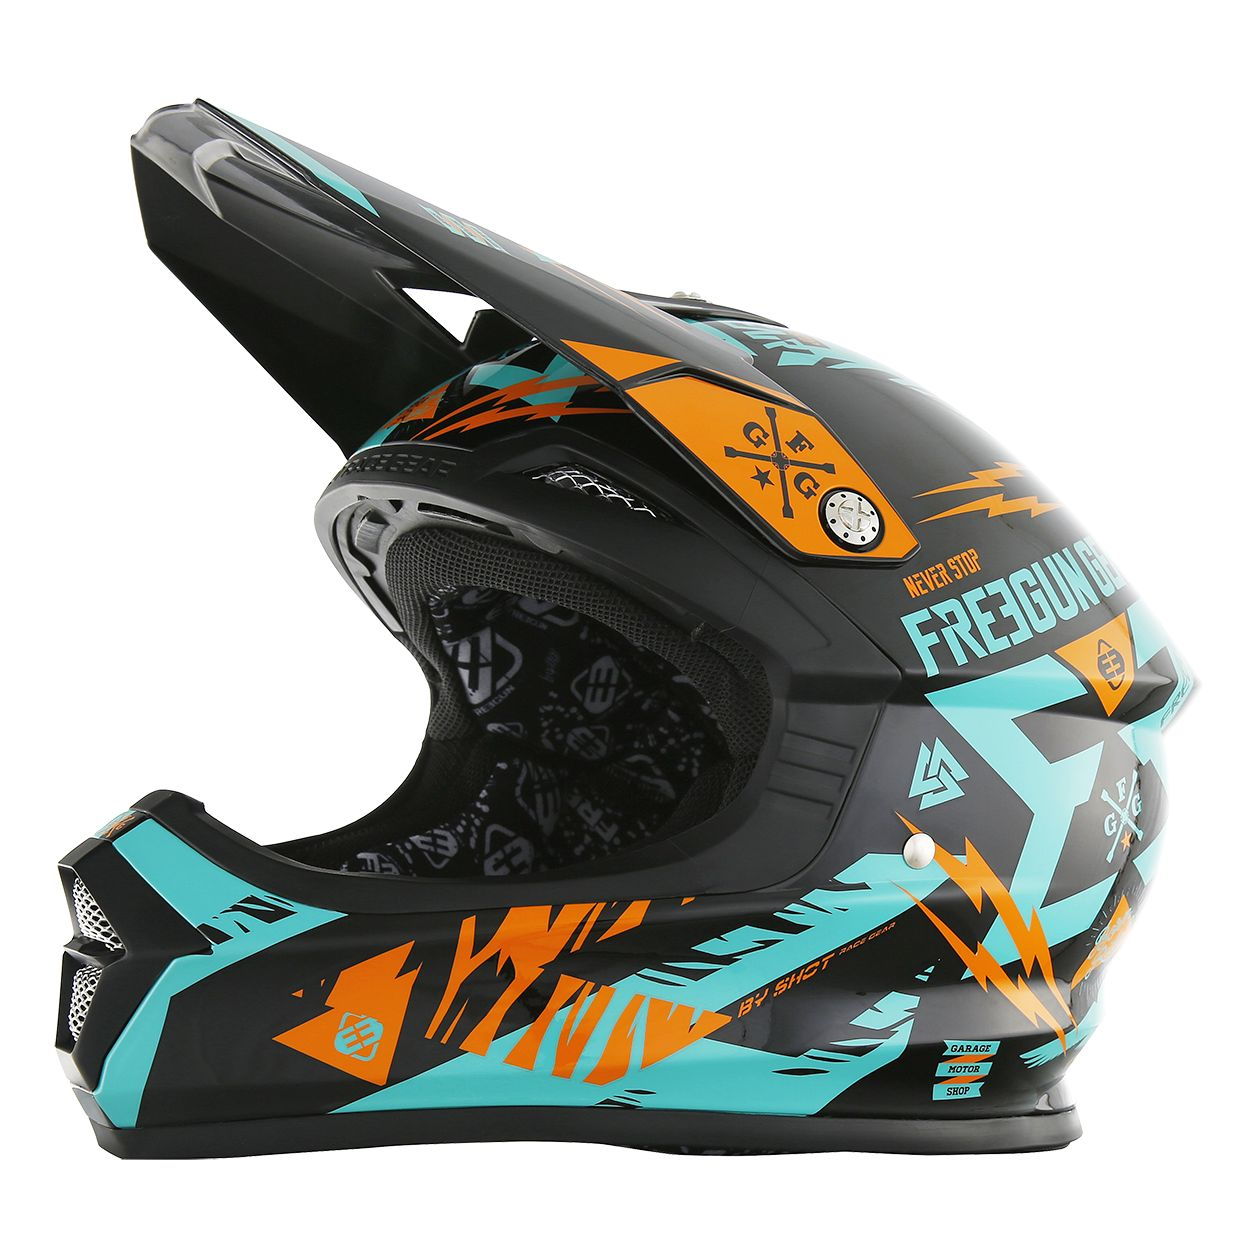 Casque Cross Shot Xp4 Trooper Mint Orange Enfant